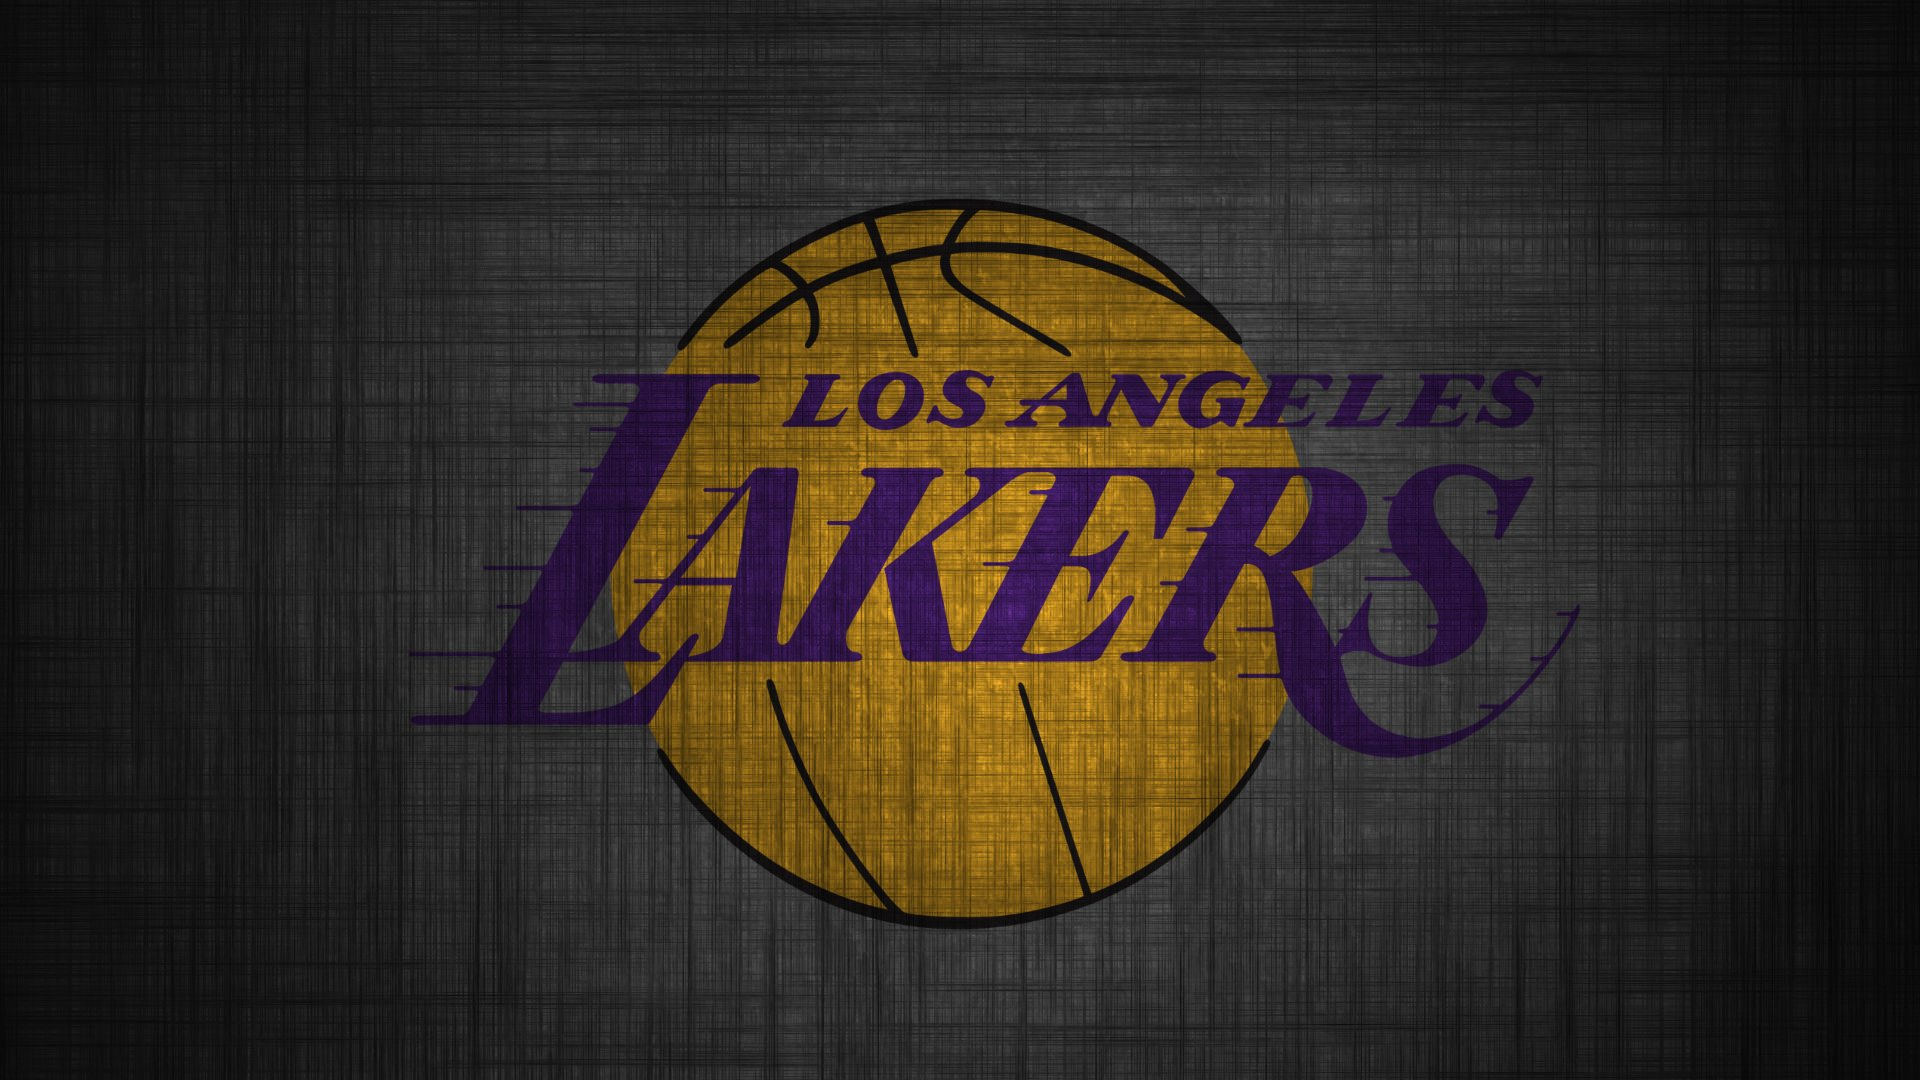 Los Angeles Lakers Wallpapers